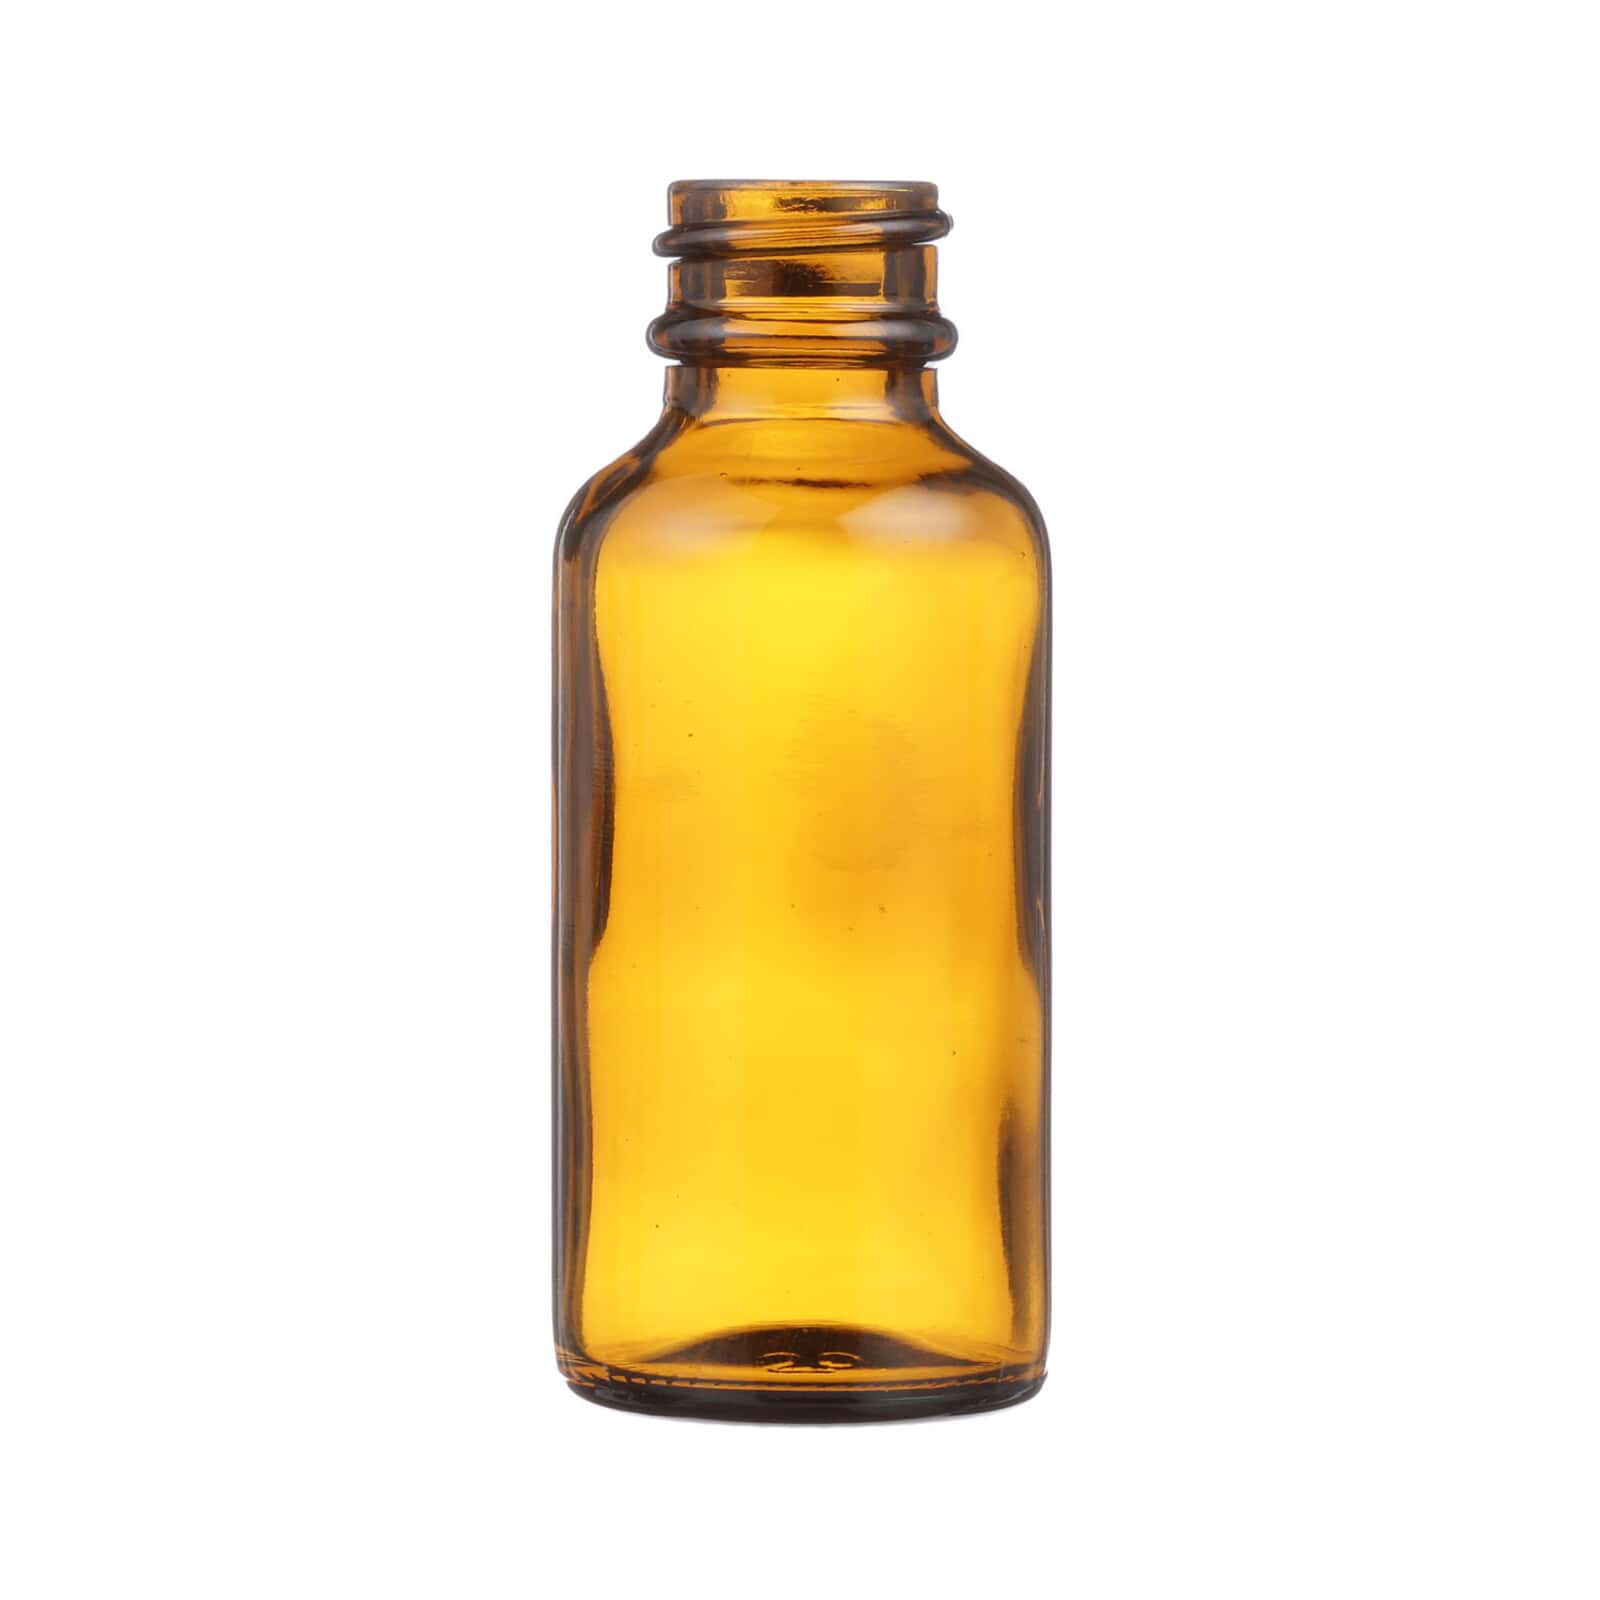 190b5258fa82 1 oz Amber Glass Boston Round Bottle - 20-400 Neck Finish